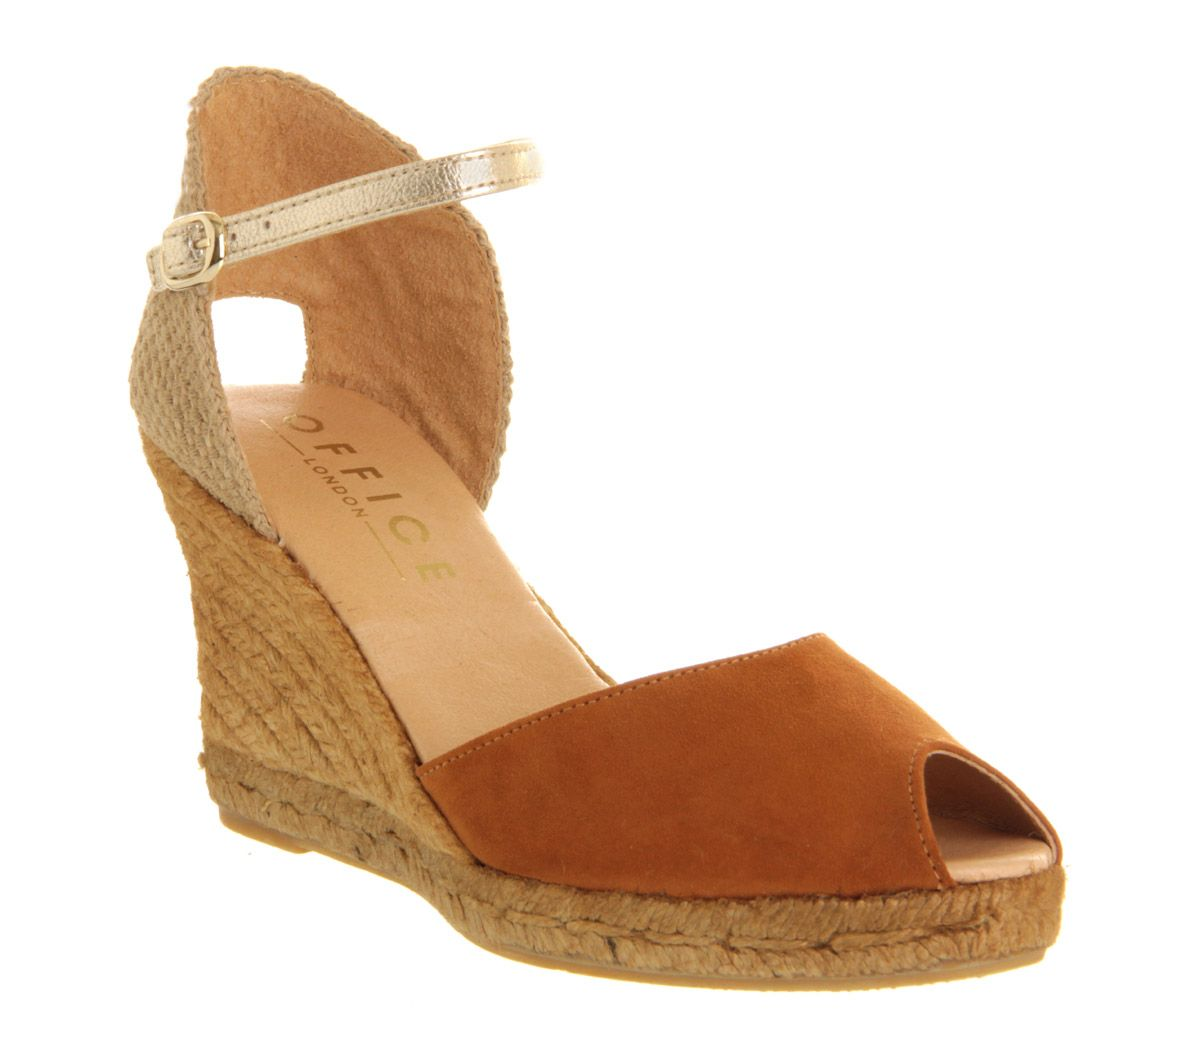 Daisy espadrille wedge sandals